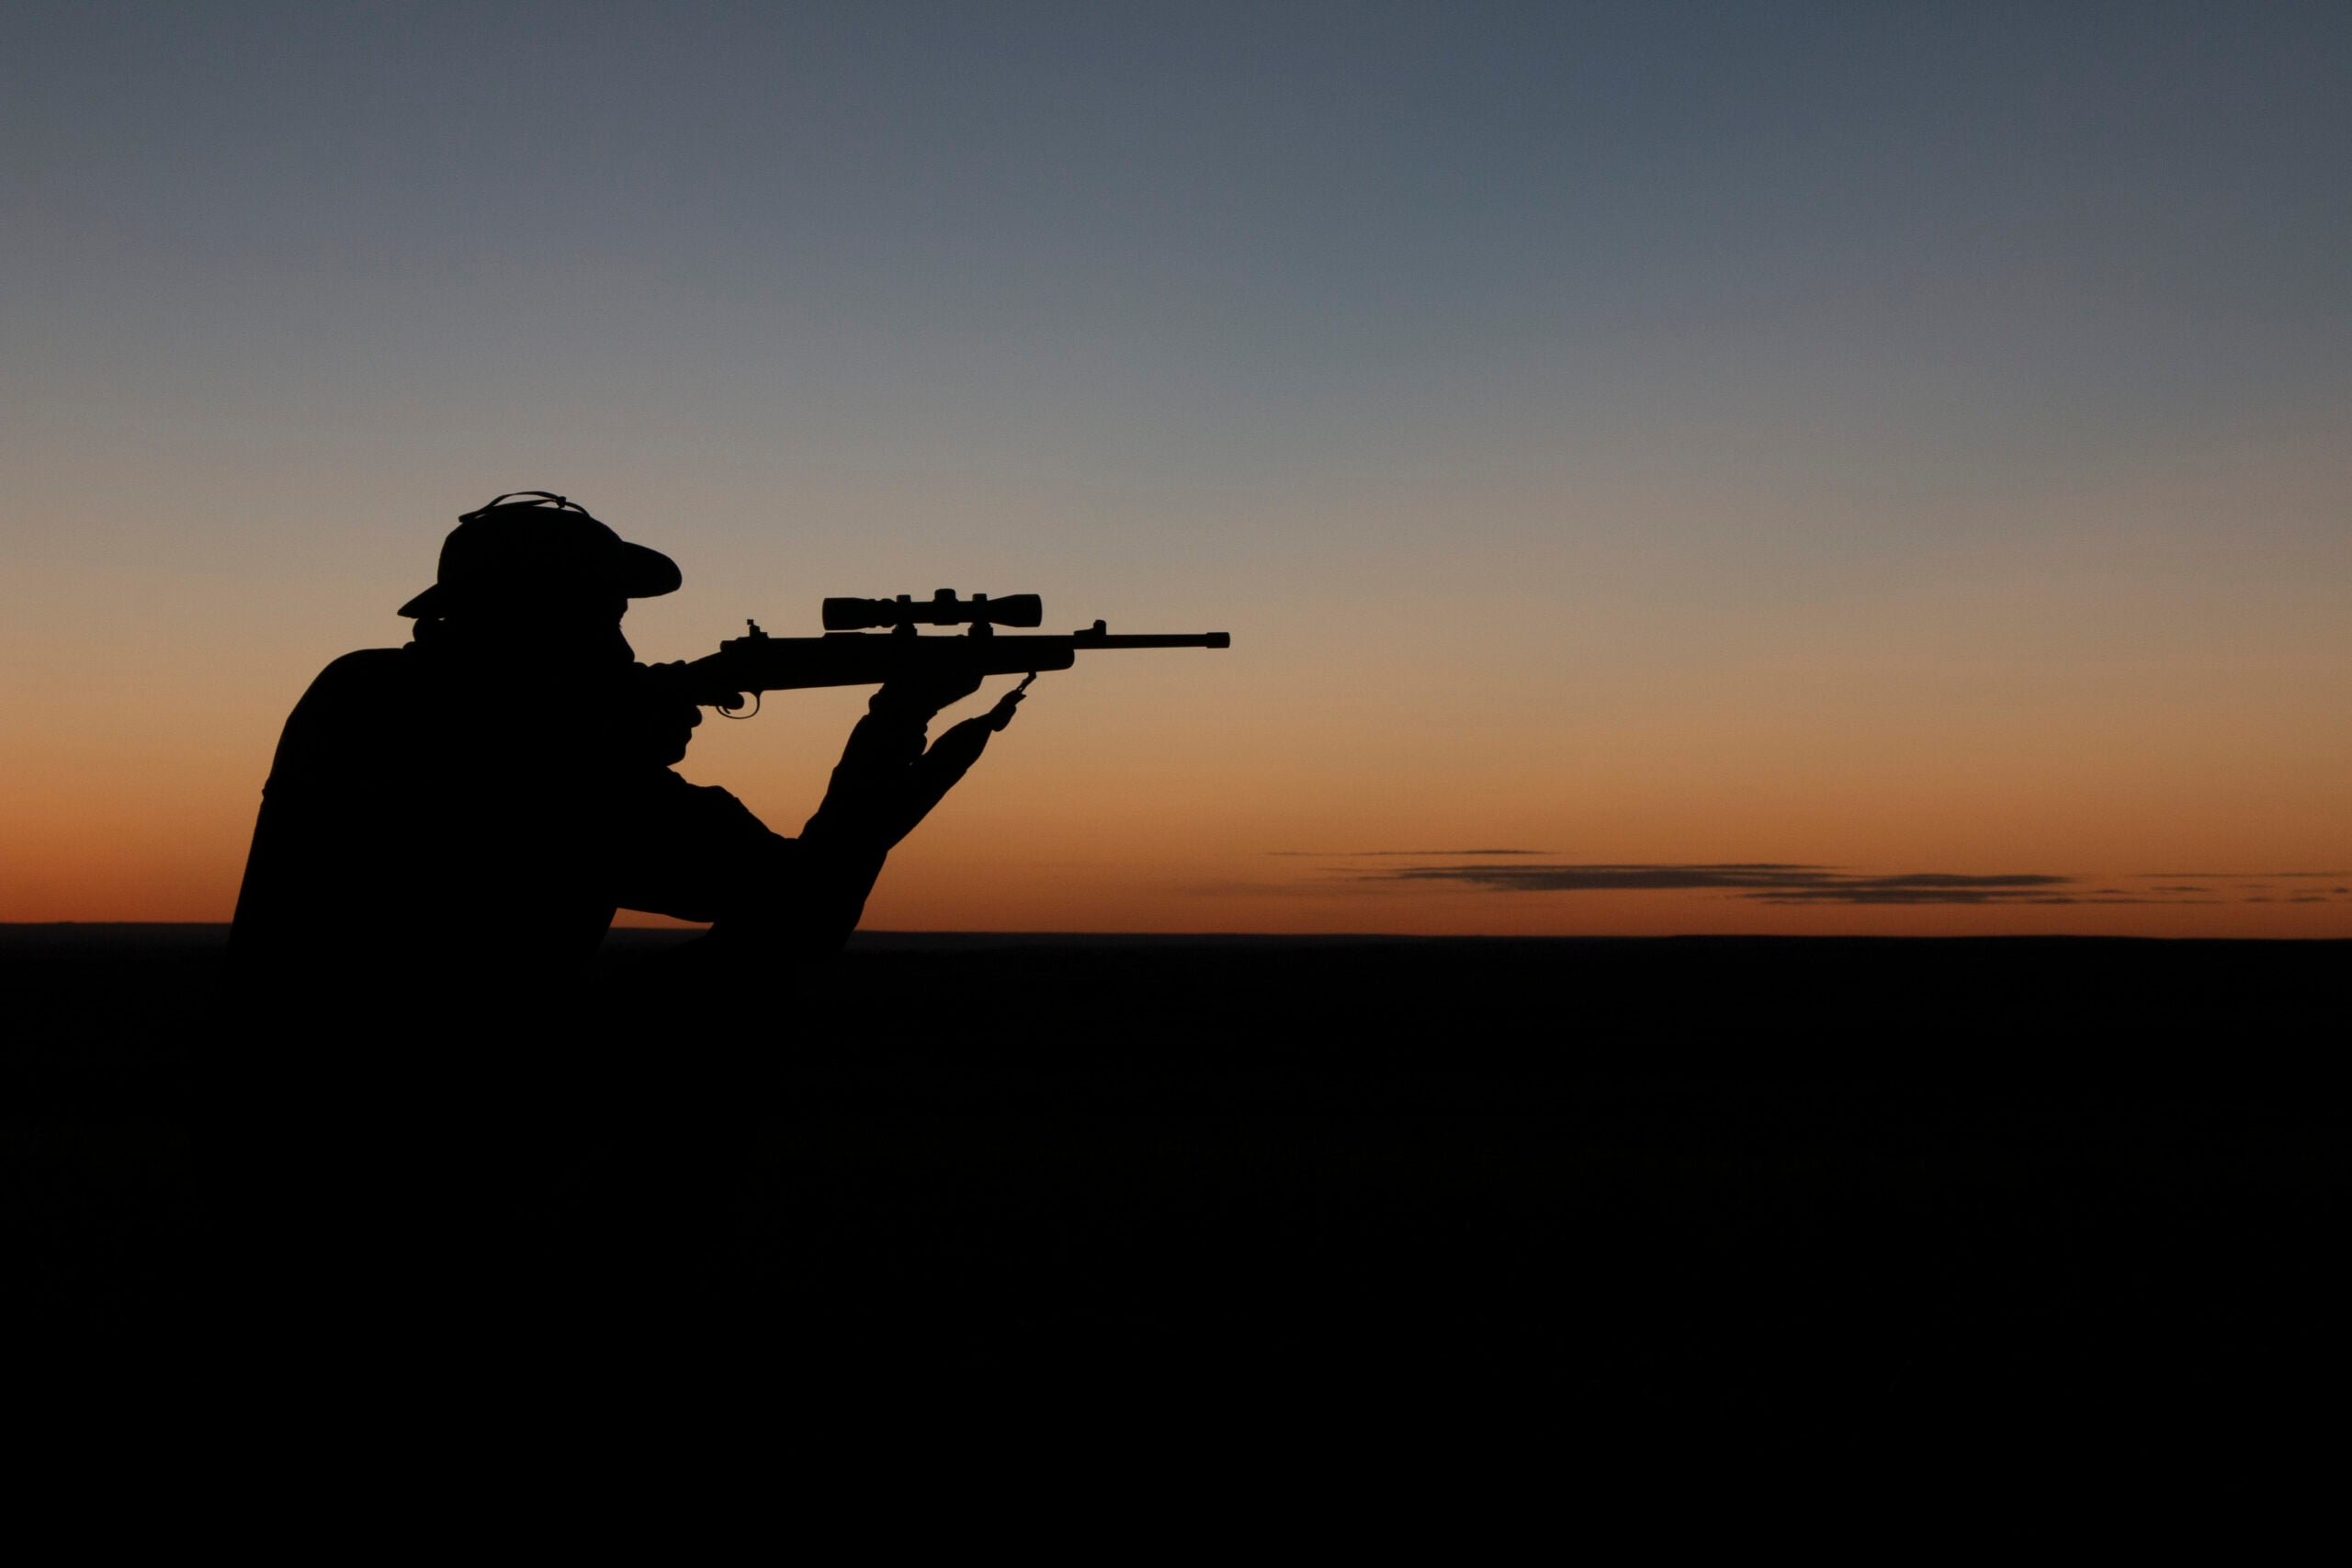 Silhouette of a man aiming a rifle against the sunset.